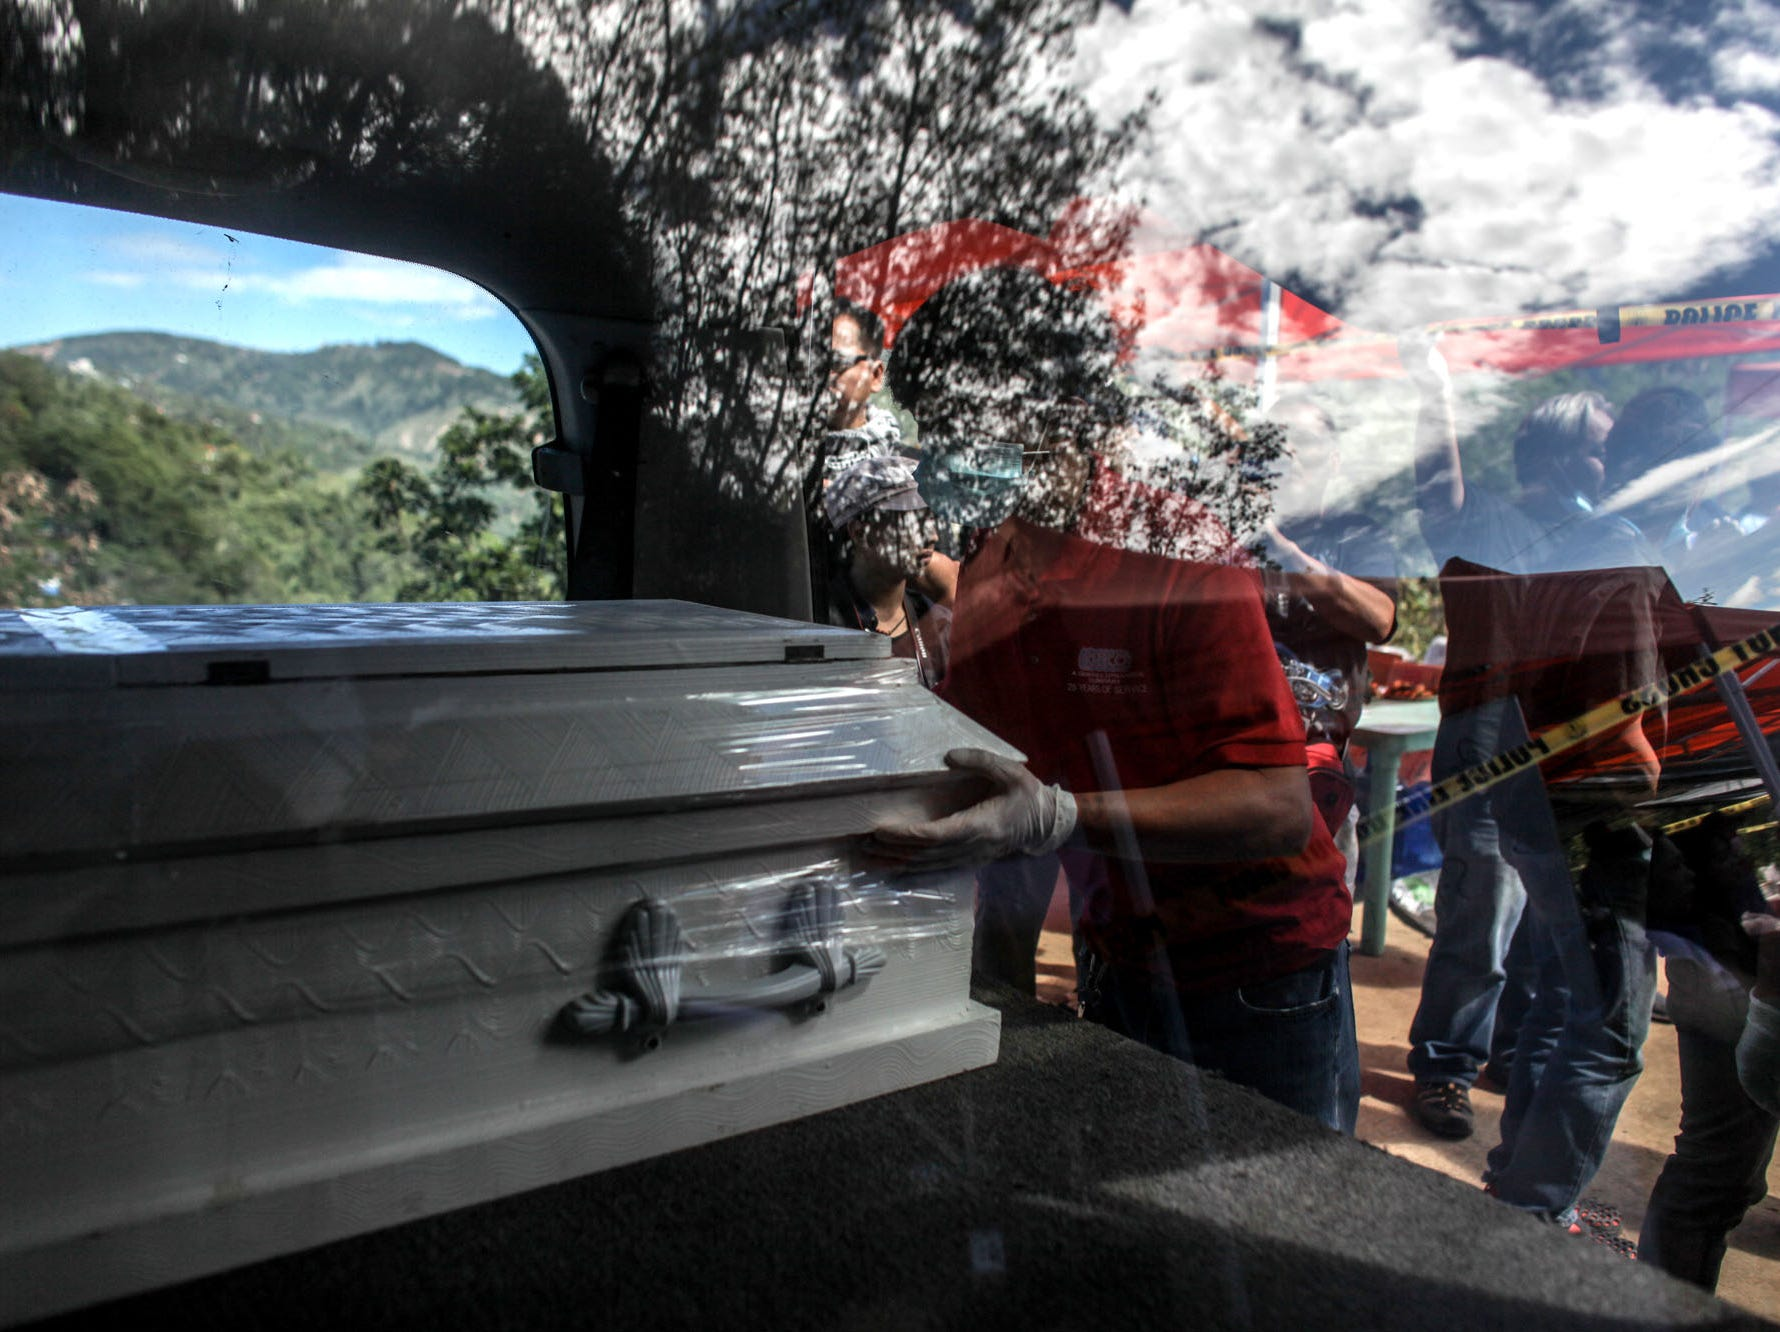 Workers place inside a vehicle a coffin of a victim killed by a landslide on Sept. 19, 2018 in Itogon, Benguet province, Philippines.